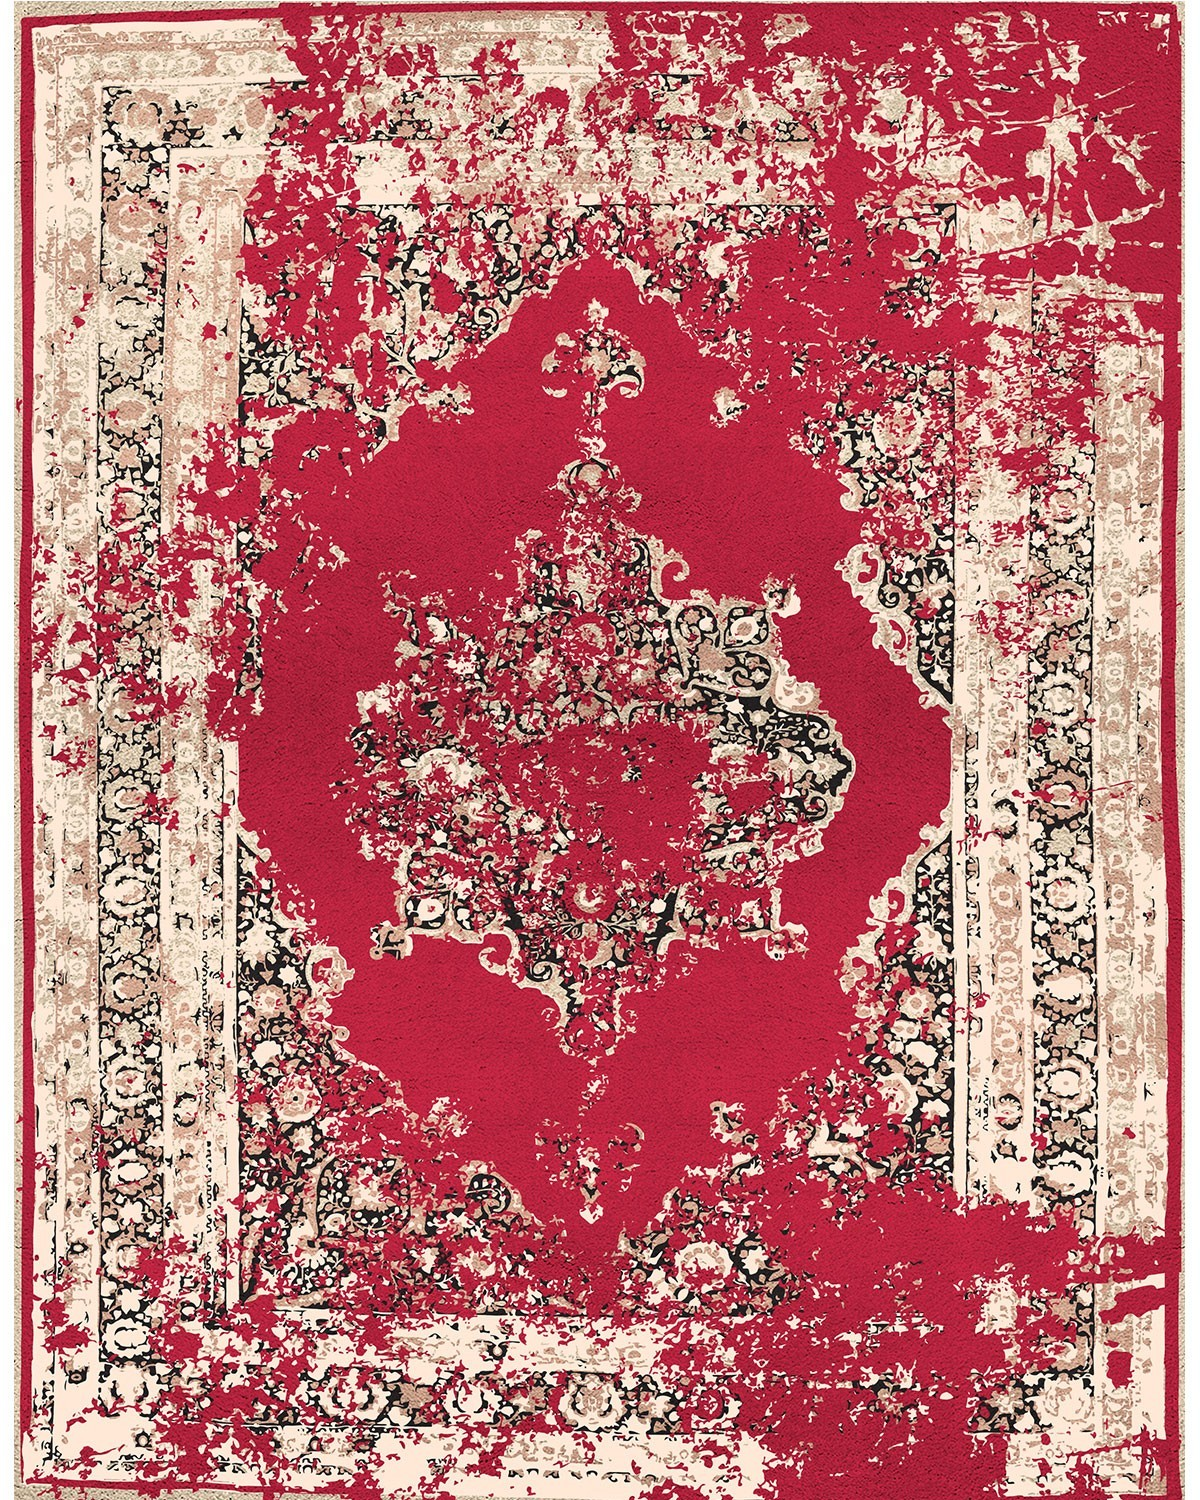 Top Living Room Rugs You Will Fall In Love With living room rugs Top Living Room Rugs You Will Fall In Love With habibib